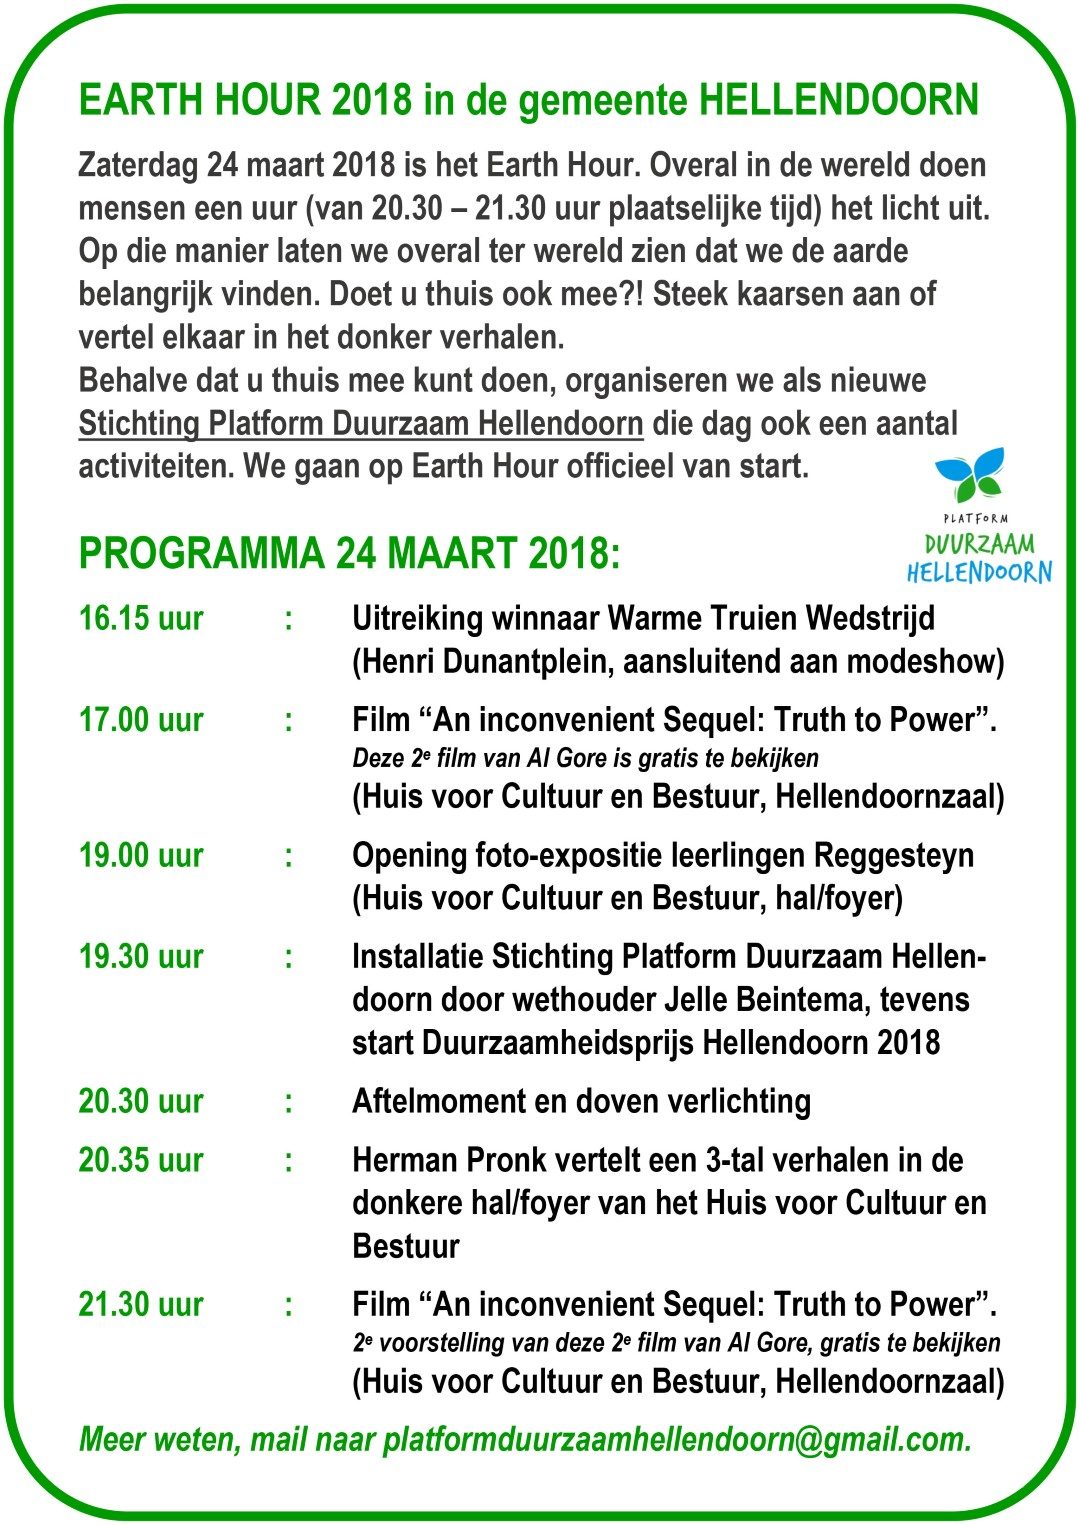 duurzaam hellendoorn Earth Hour 2 2018